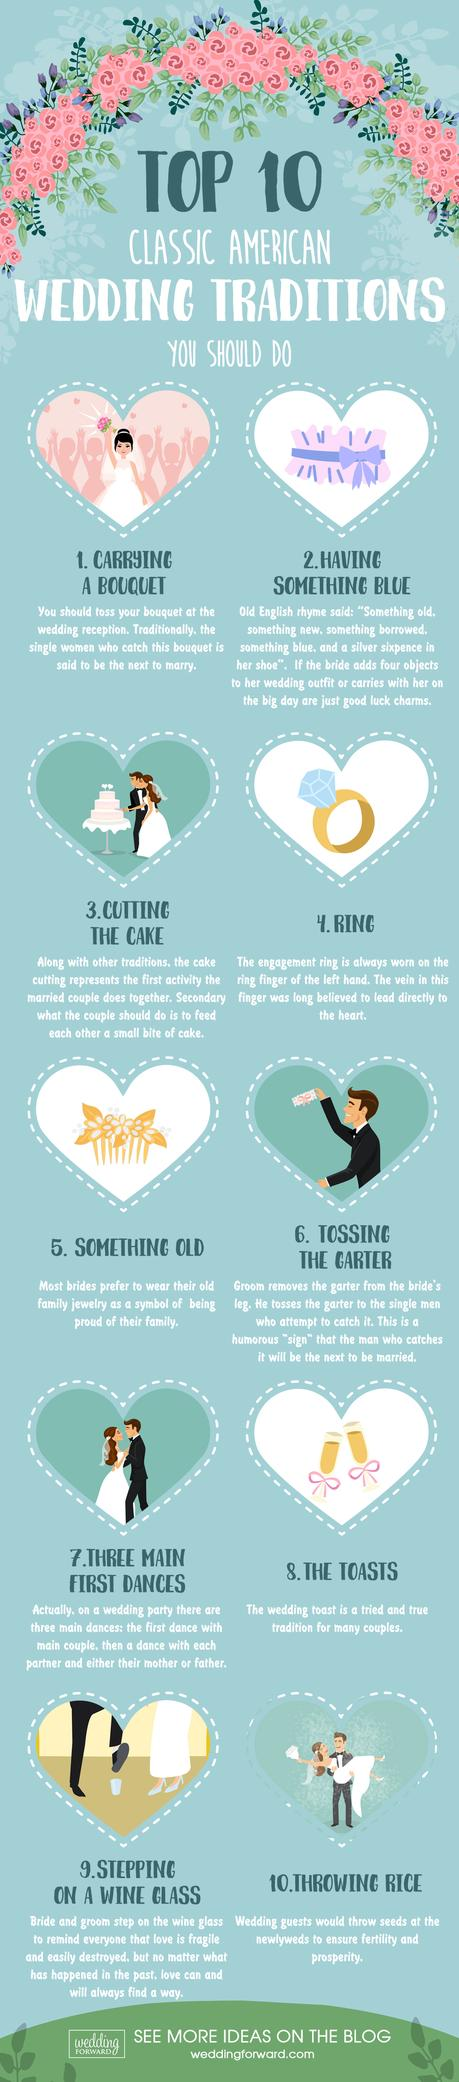 american wedding traditions top 10 classic american wedding traditions you should do infographic